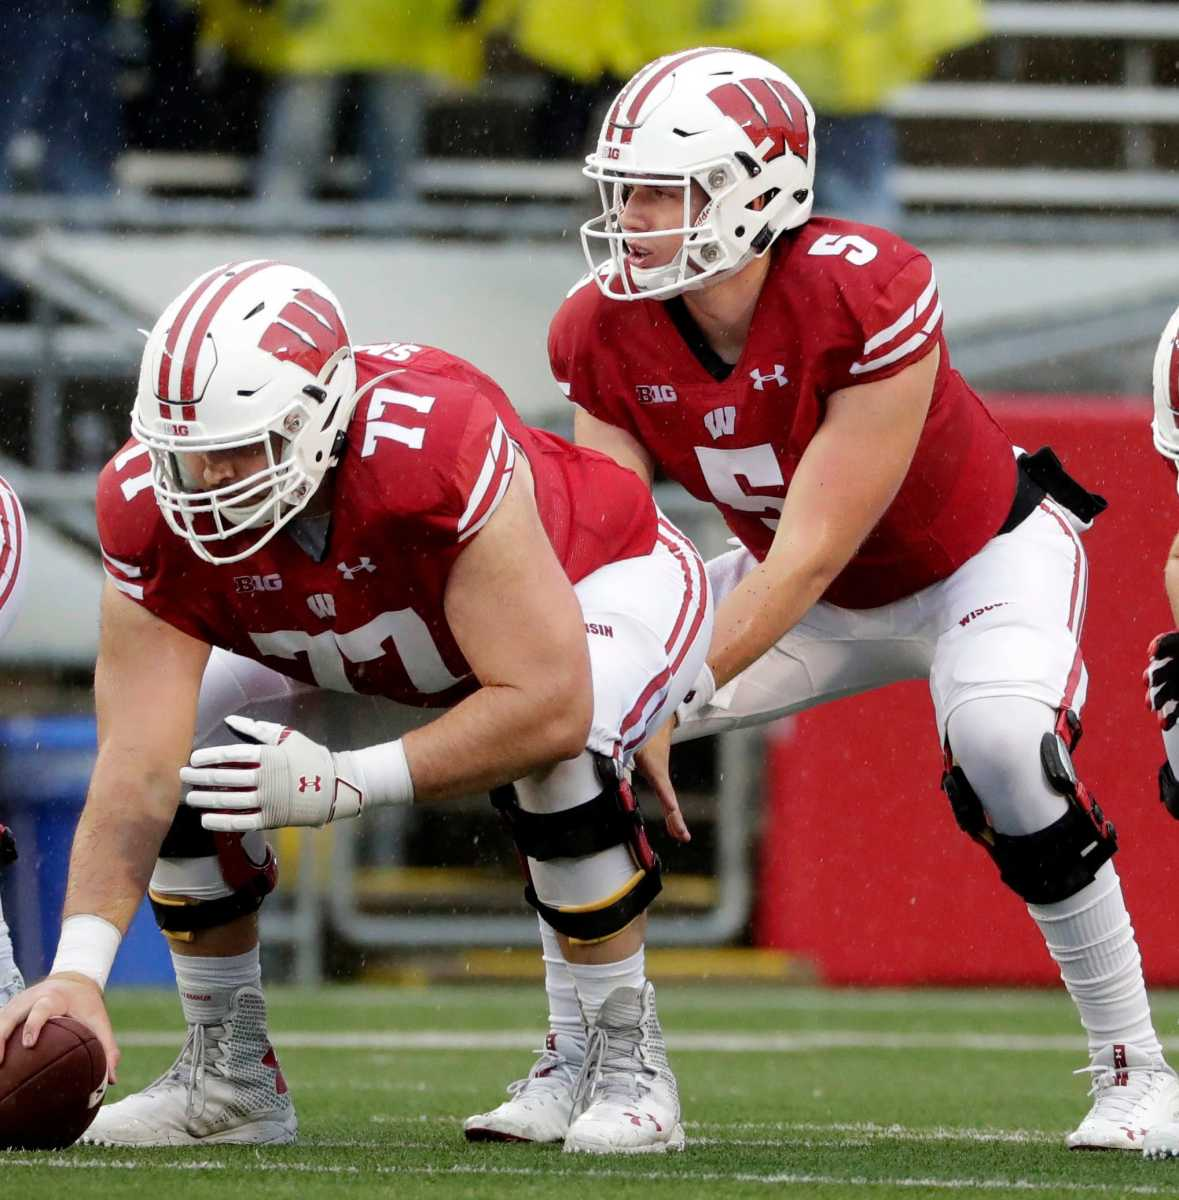 Wisconsin freshman quarterback Graham Mertz scans over the Kent State defense before taking a snap during the fourth quarter of a 2019 game.